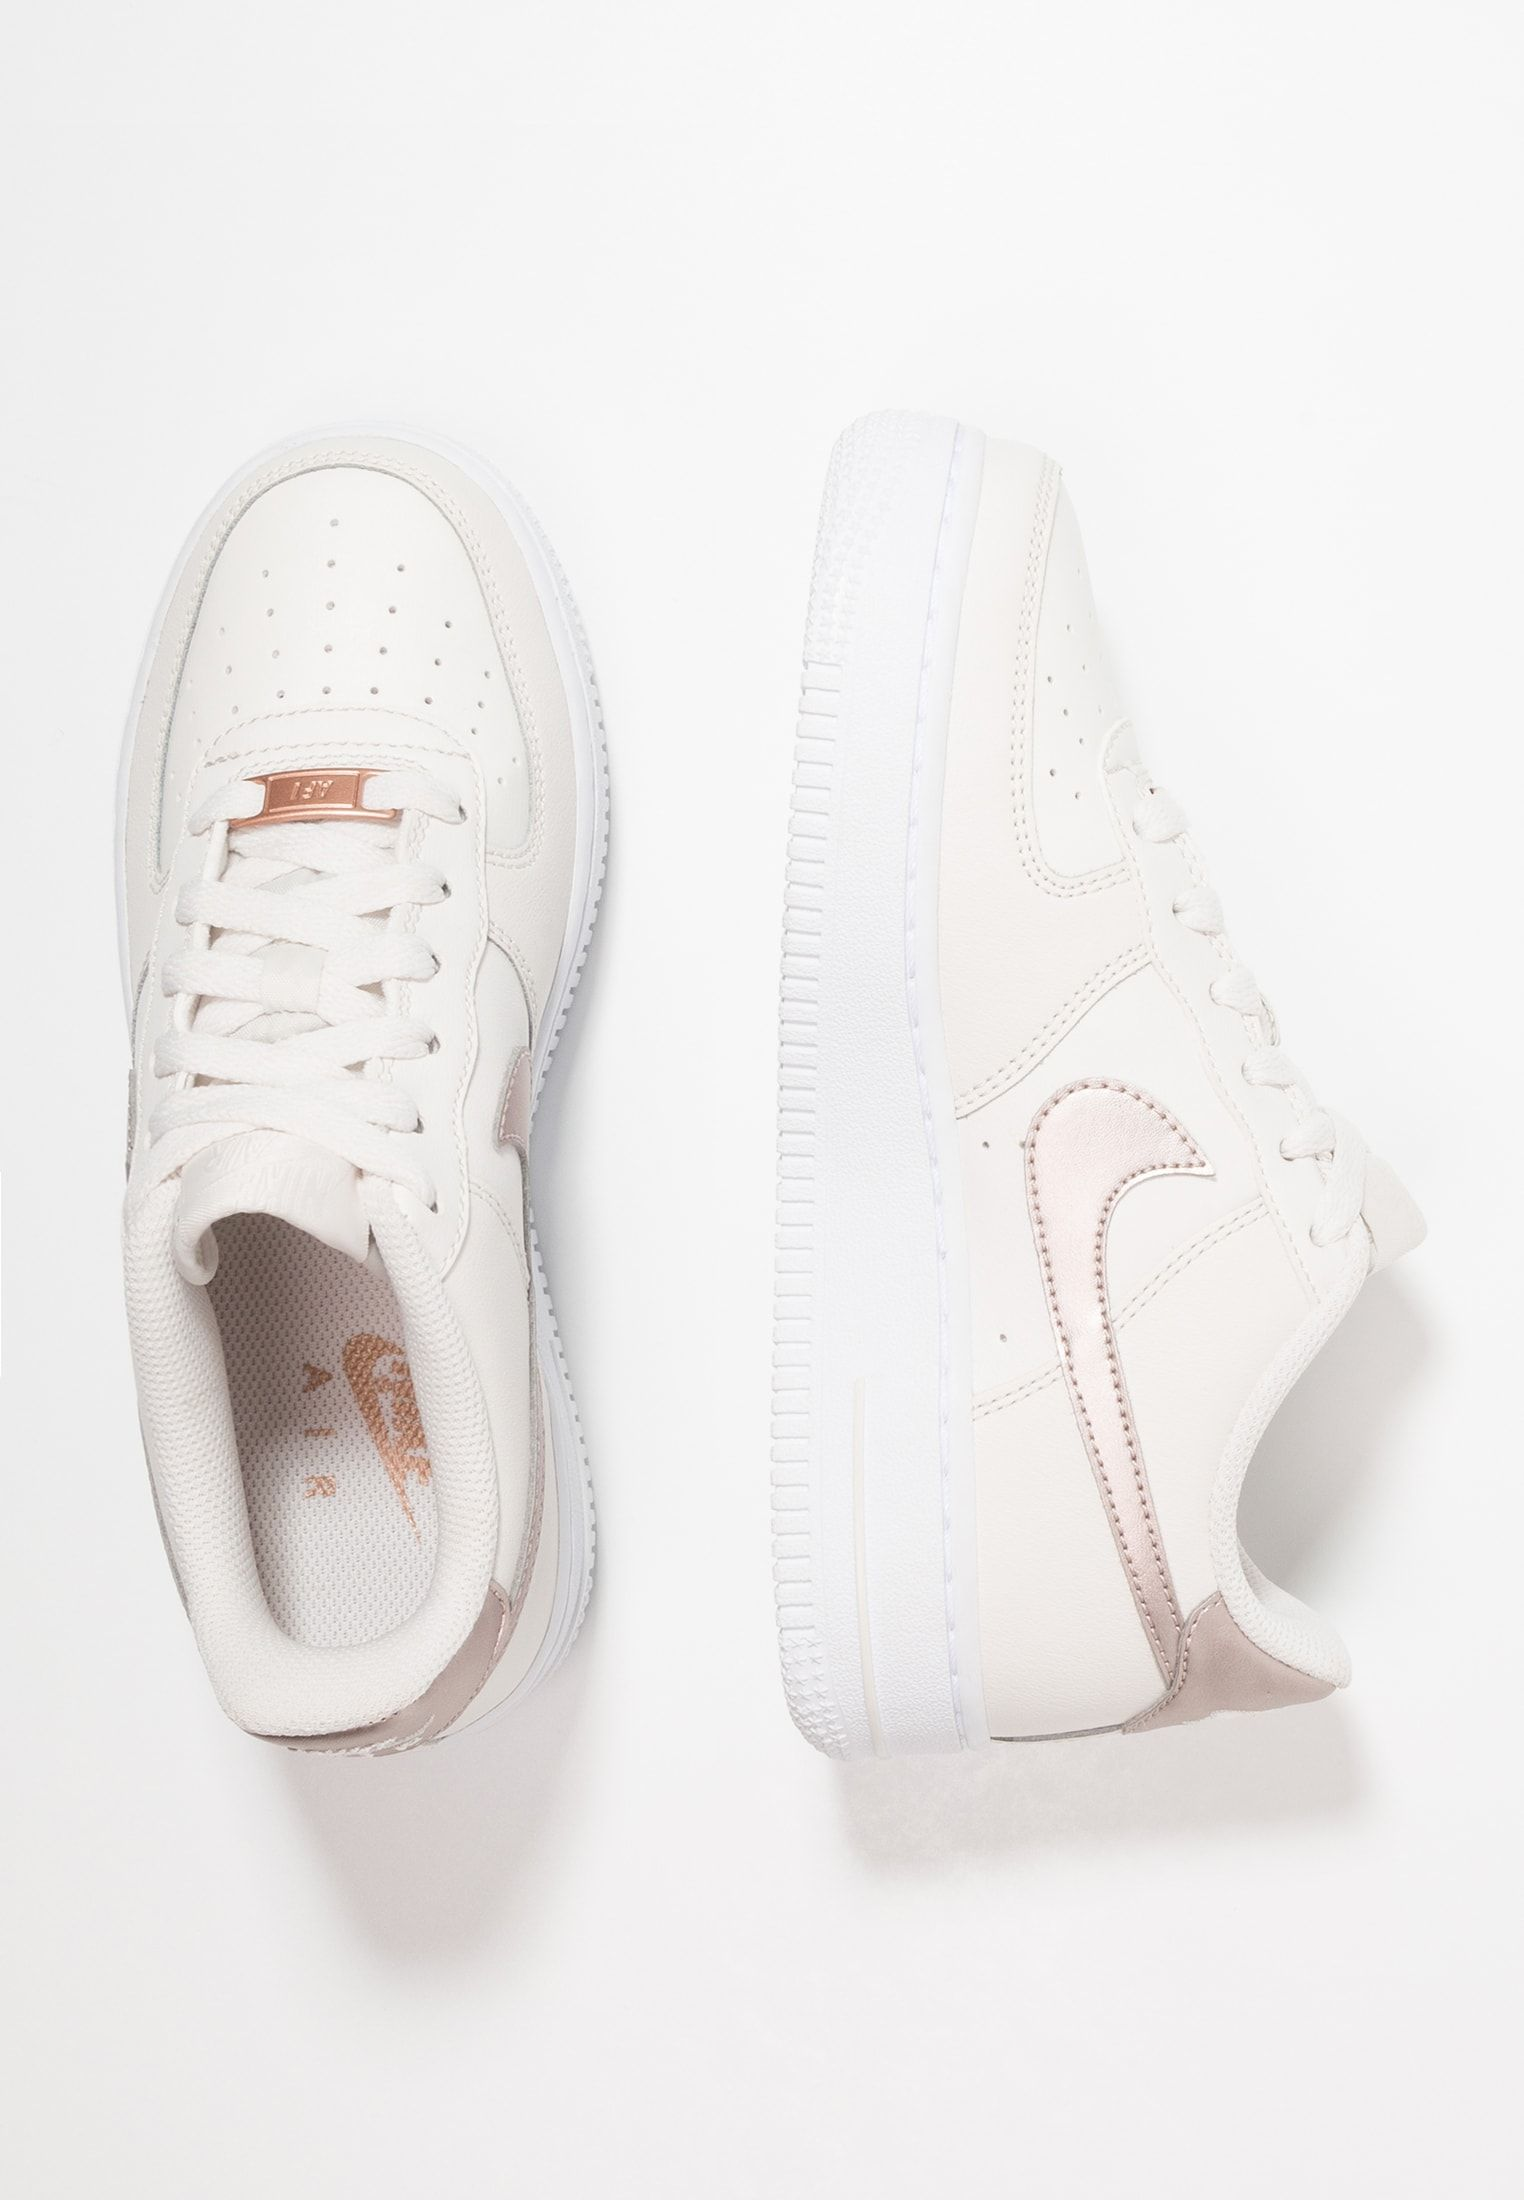 Nike Sportswear Air Force 1 Gs Sneakers Laag Phantom Metallic Red Bronze White Zalando Nl Zalando Schuhe Wolle Kaufen